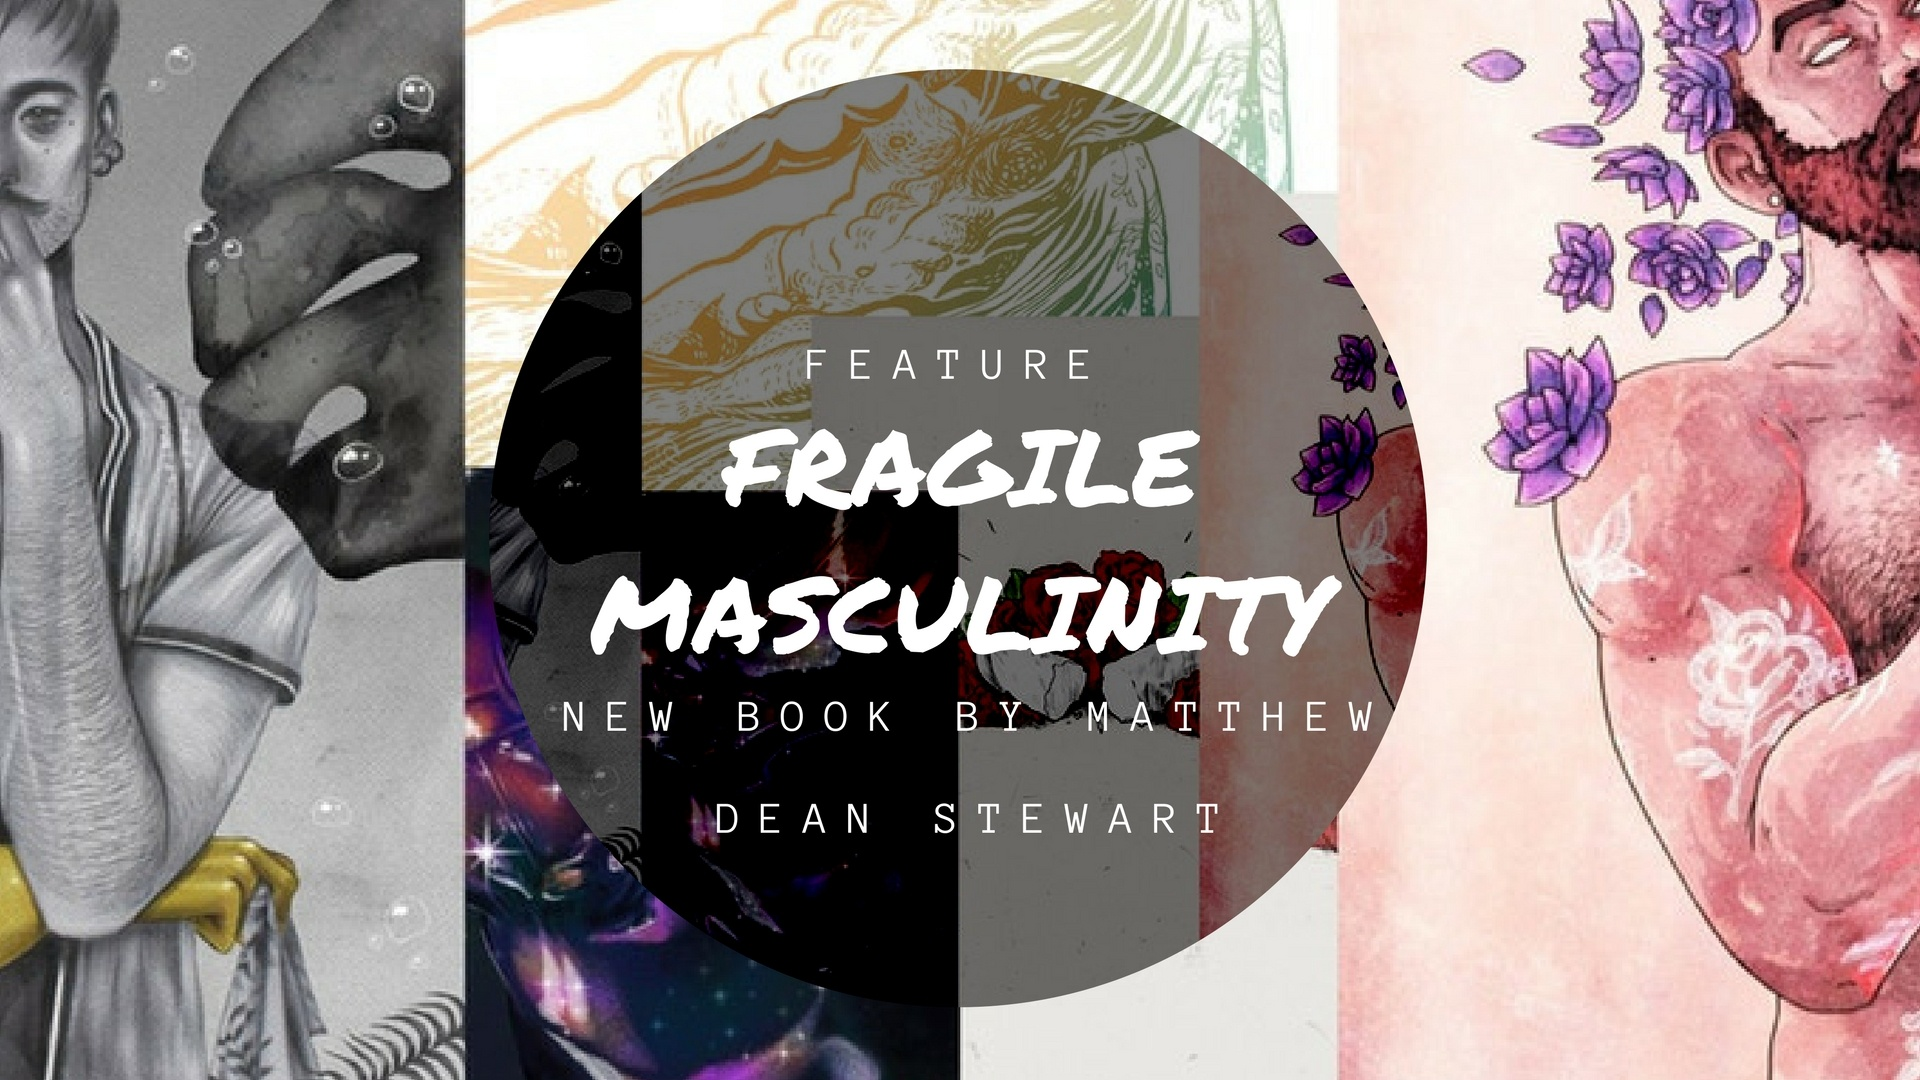 Collage of images from Fragile Masculinity's graphics